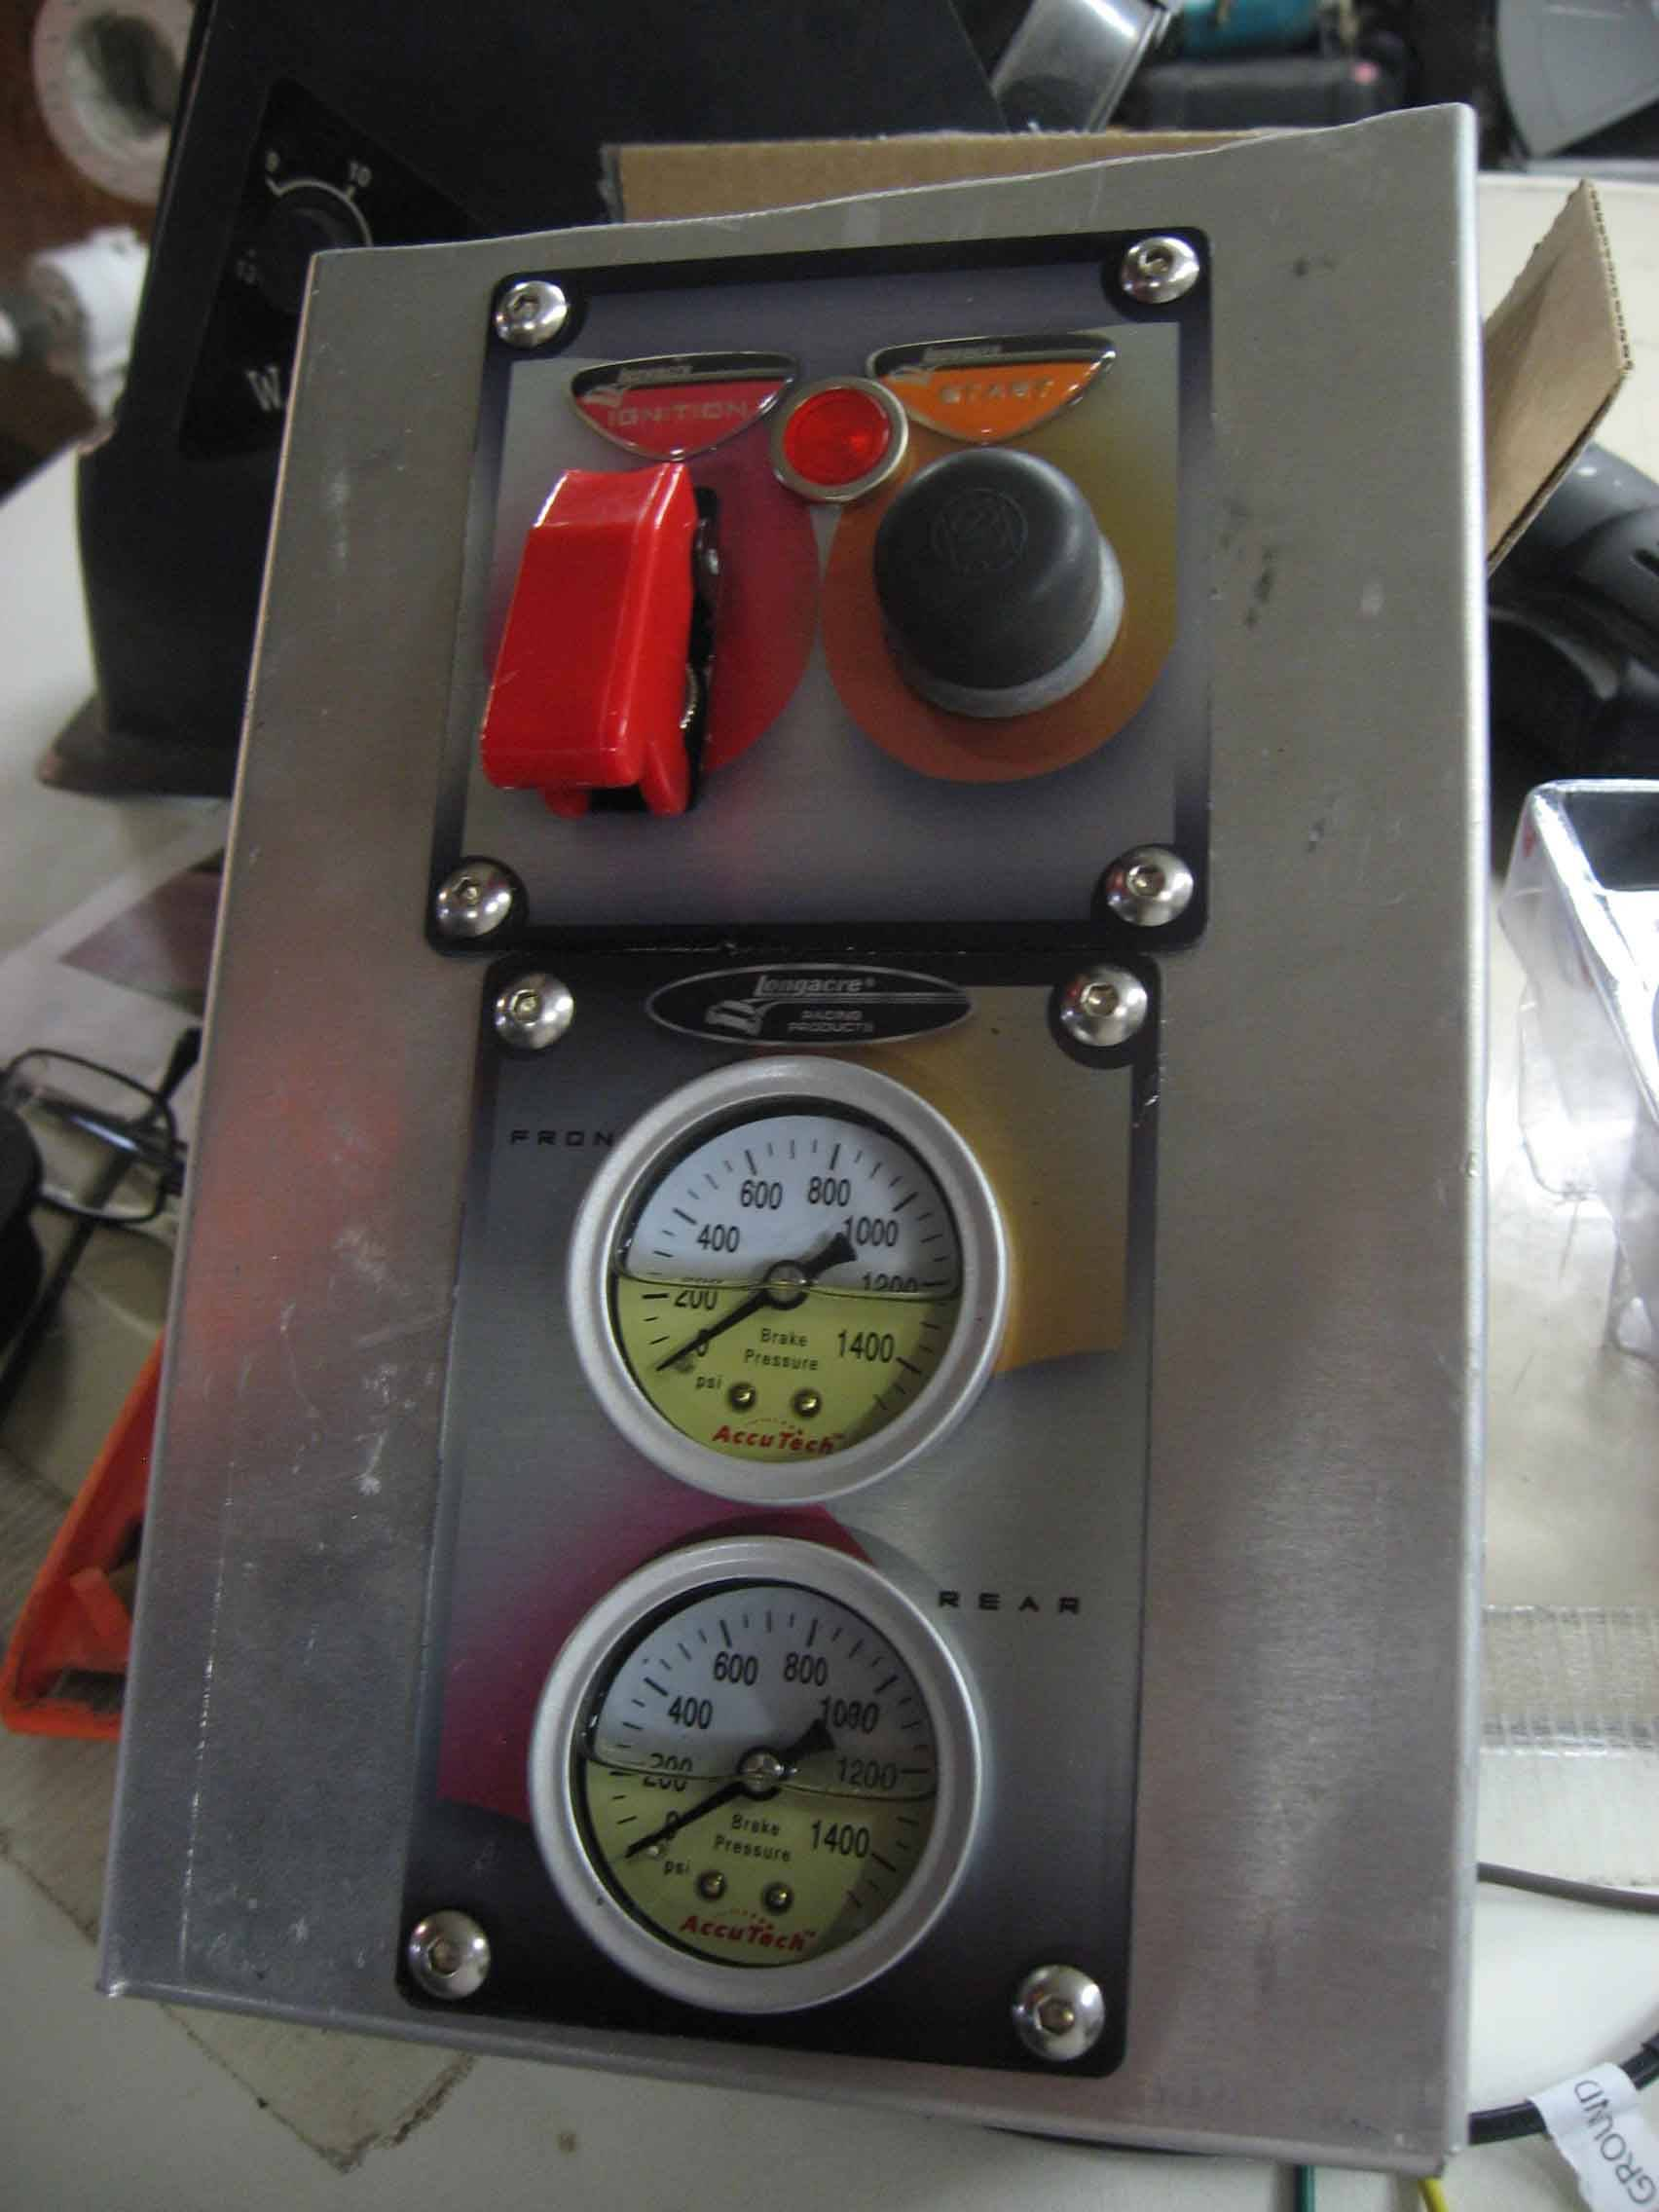 Break Bias and Ignition Panel